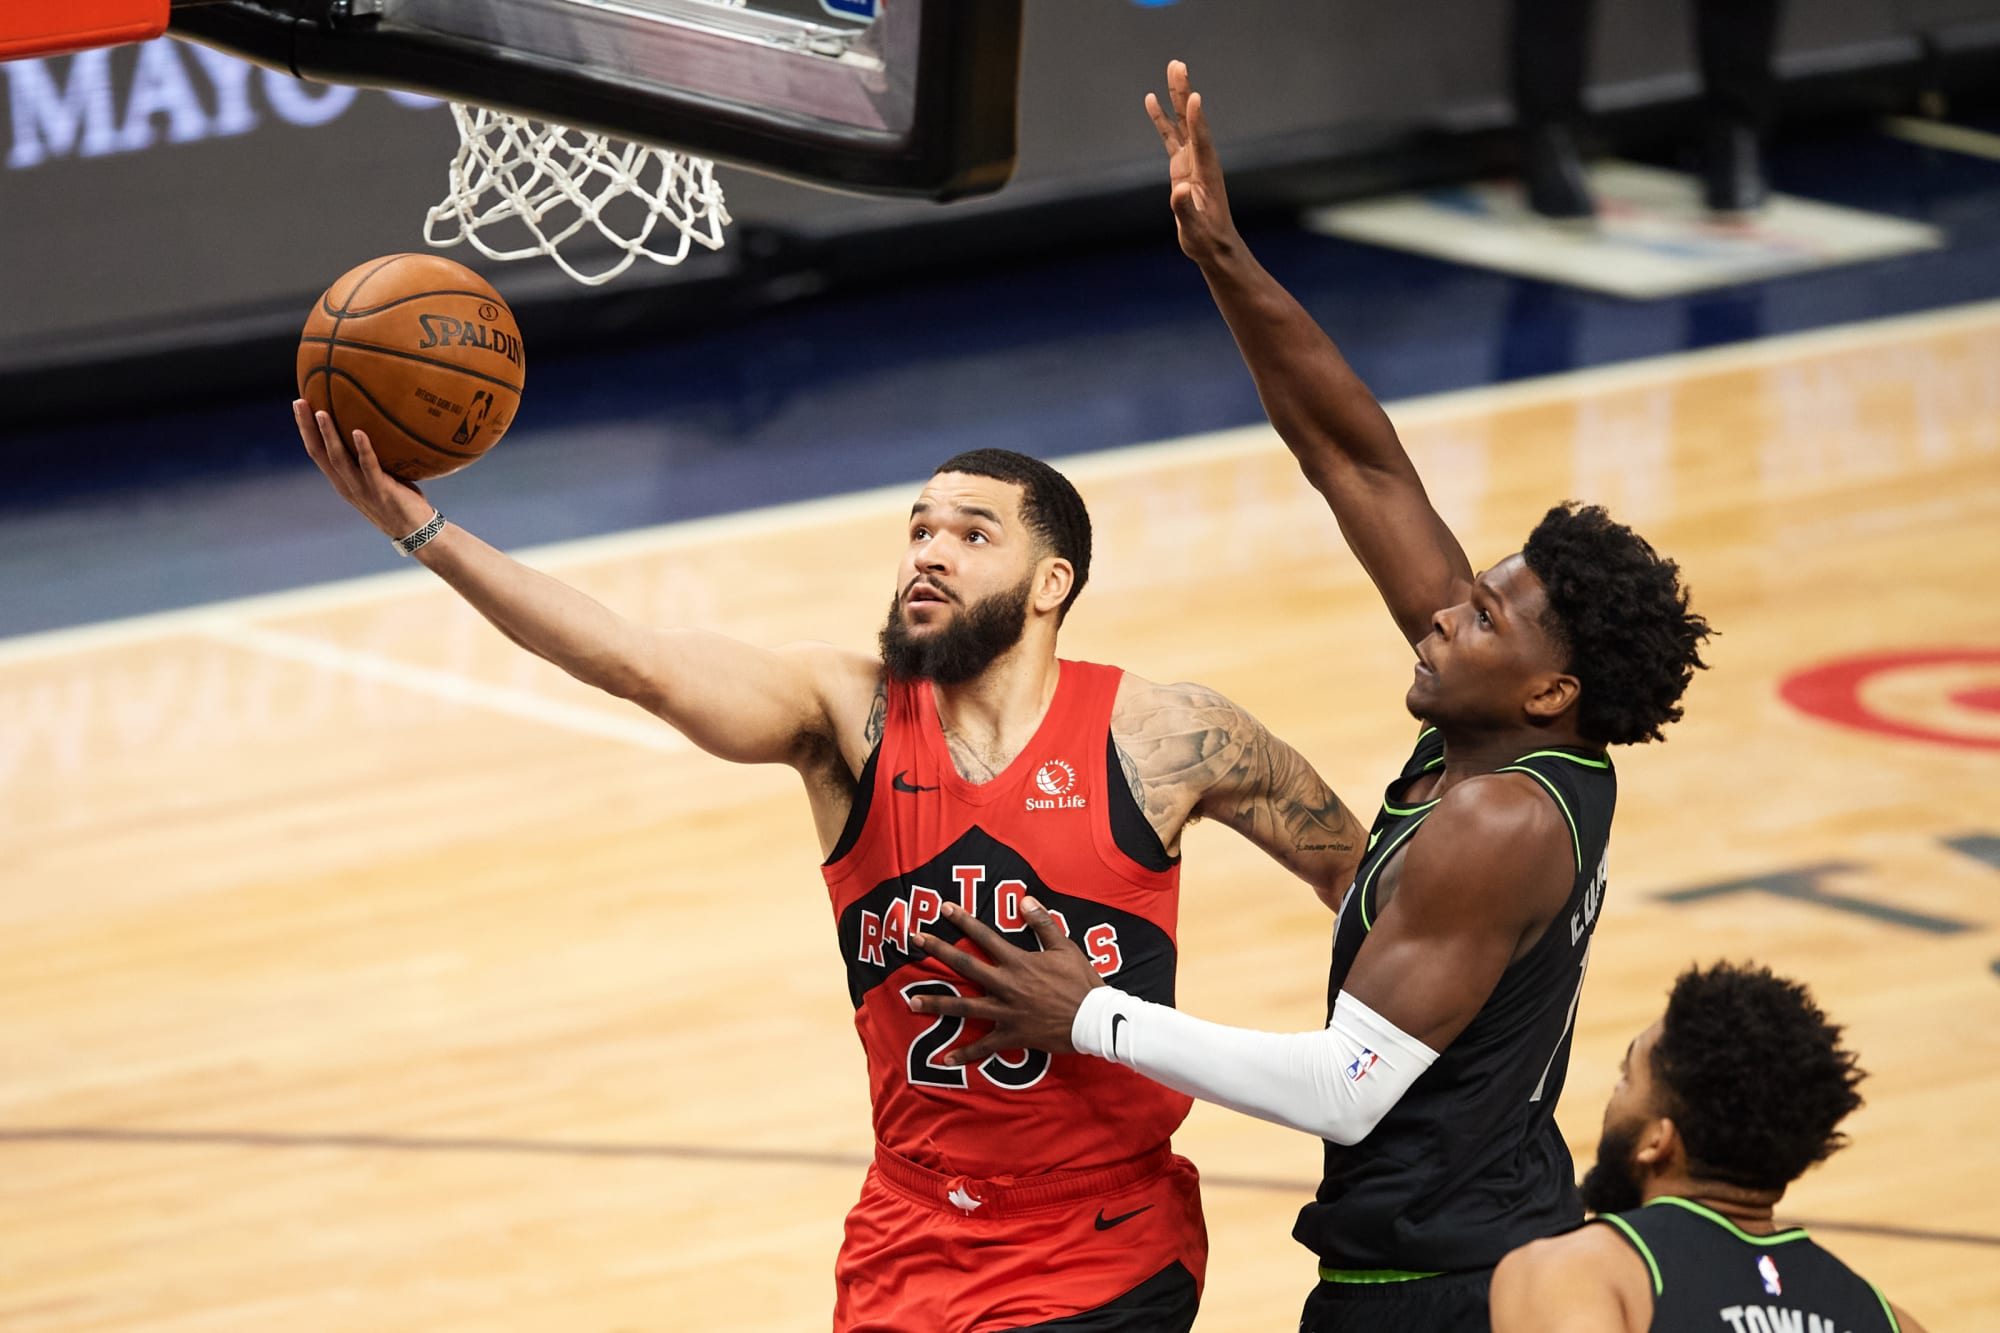 Raptors: Were Fred VanVleet and the Raptors snubbed from the All-Star game?